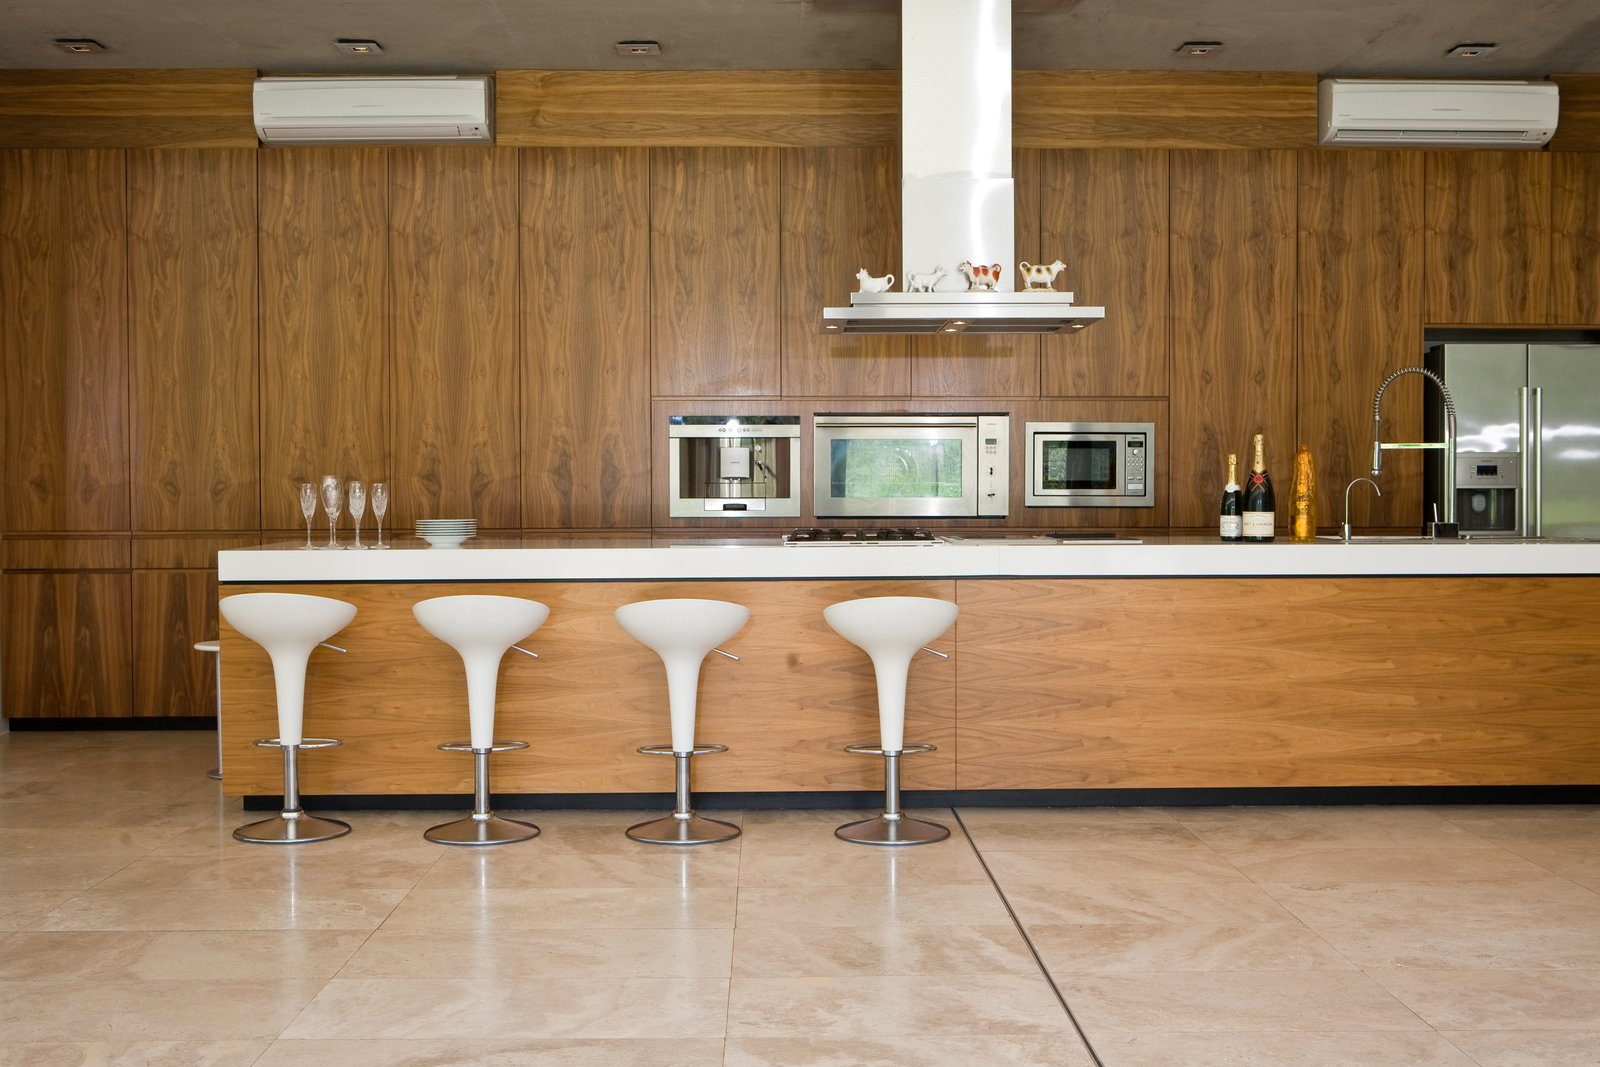 Herman and his wife love to cook for and entertain their guests. They also have a great selection of South African wine and malt whiskey. This South African Villa Lets You Bask in Divine Views - Photo 5 of 10